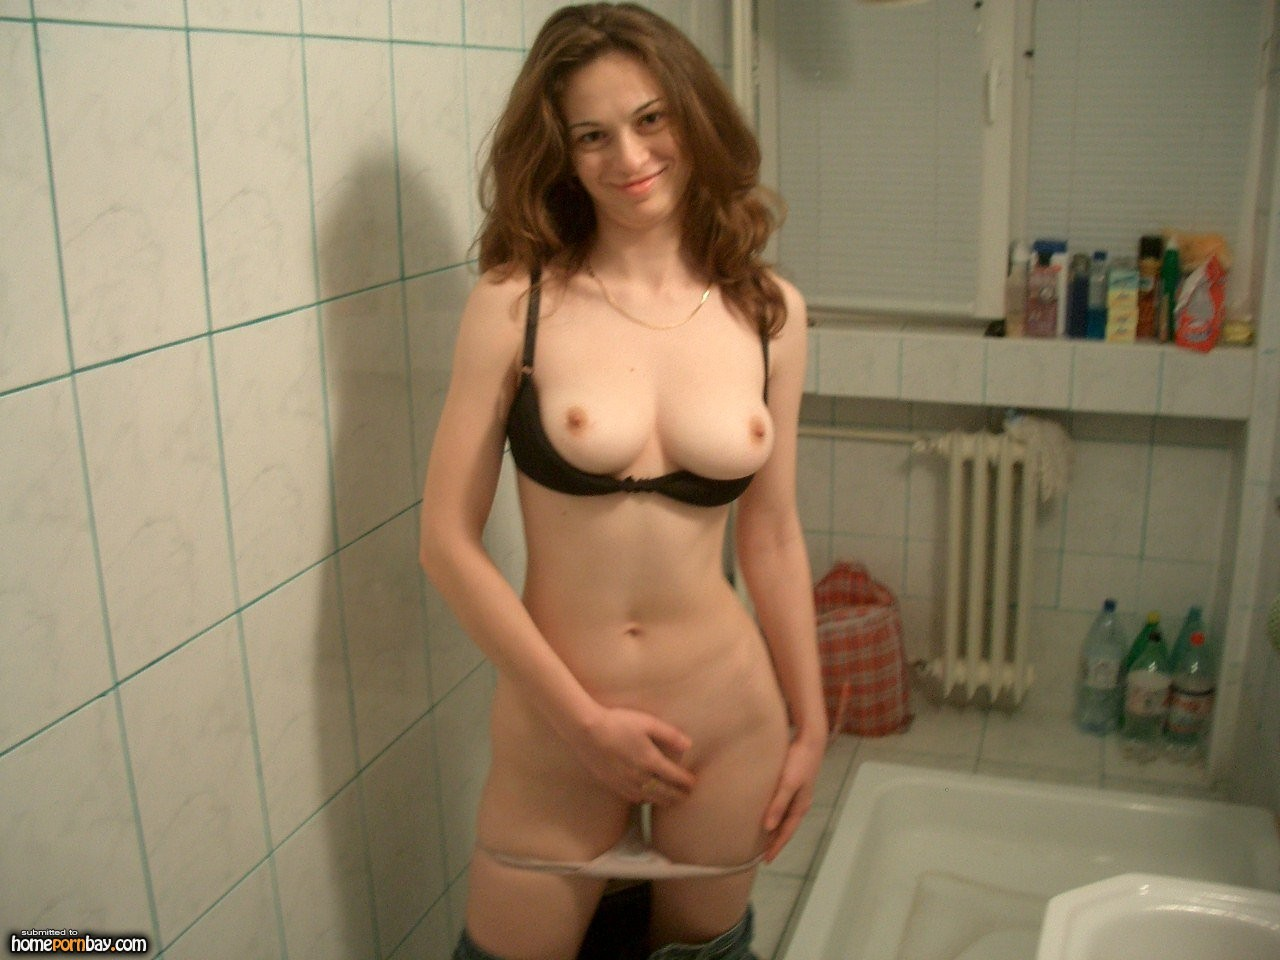 Nude mom homemade amateur